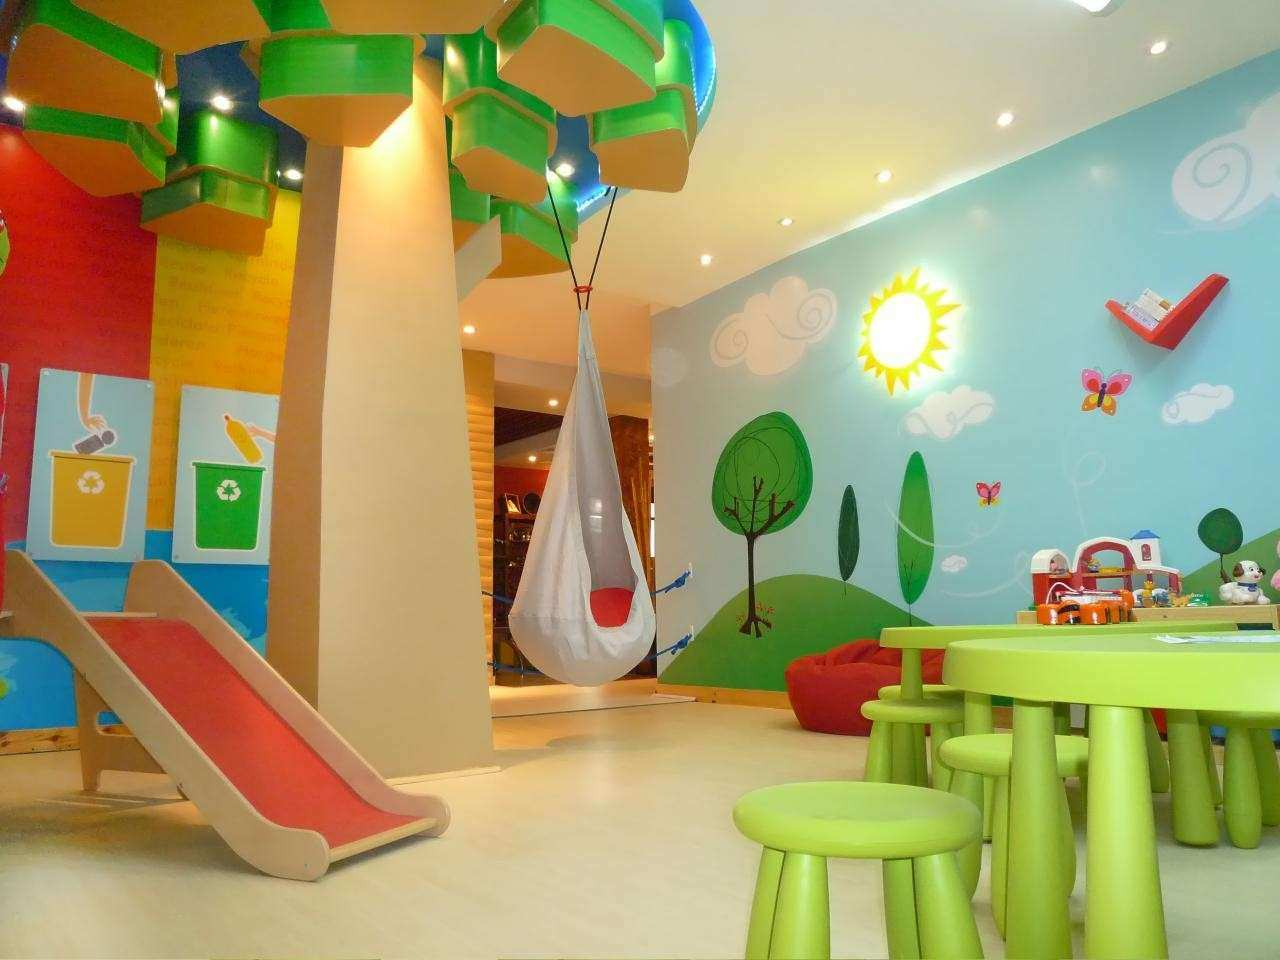 Decorating Ideas for Fun Playrooms and Kids Bedrooms